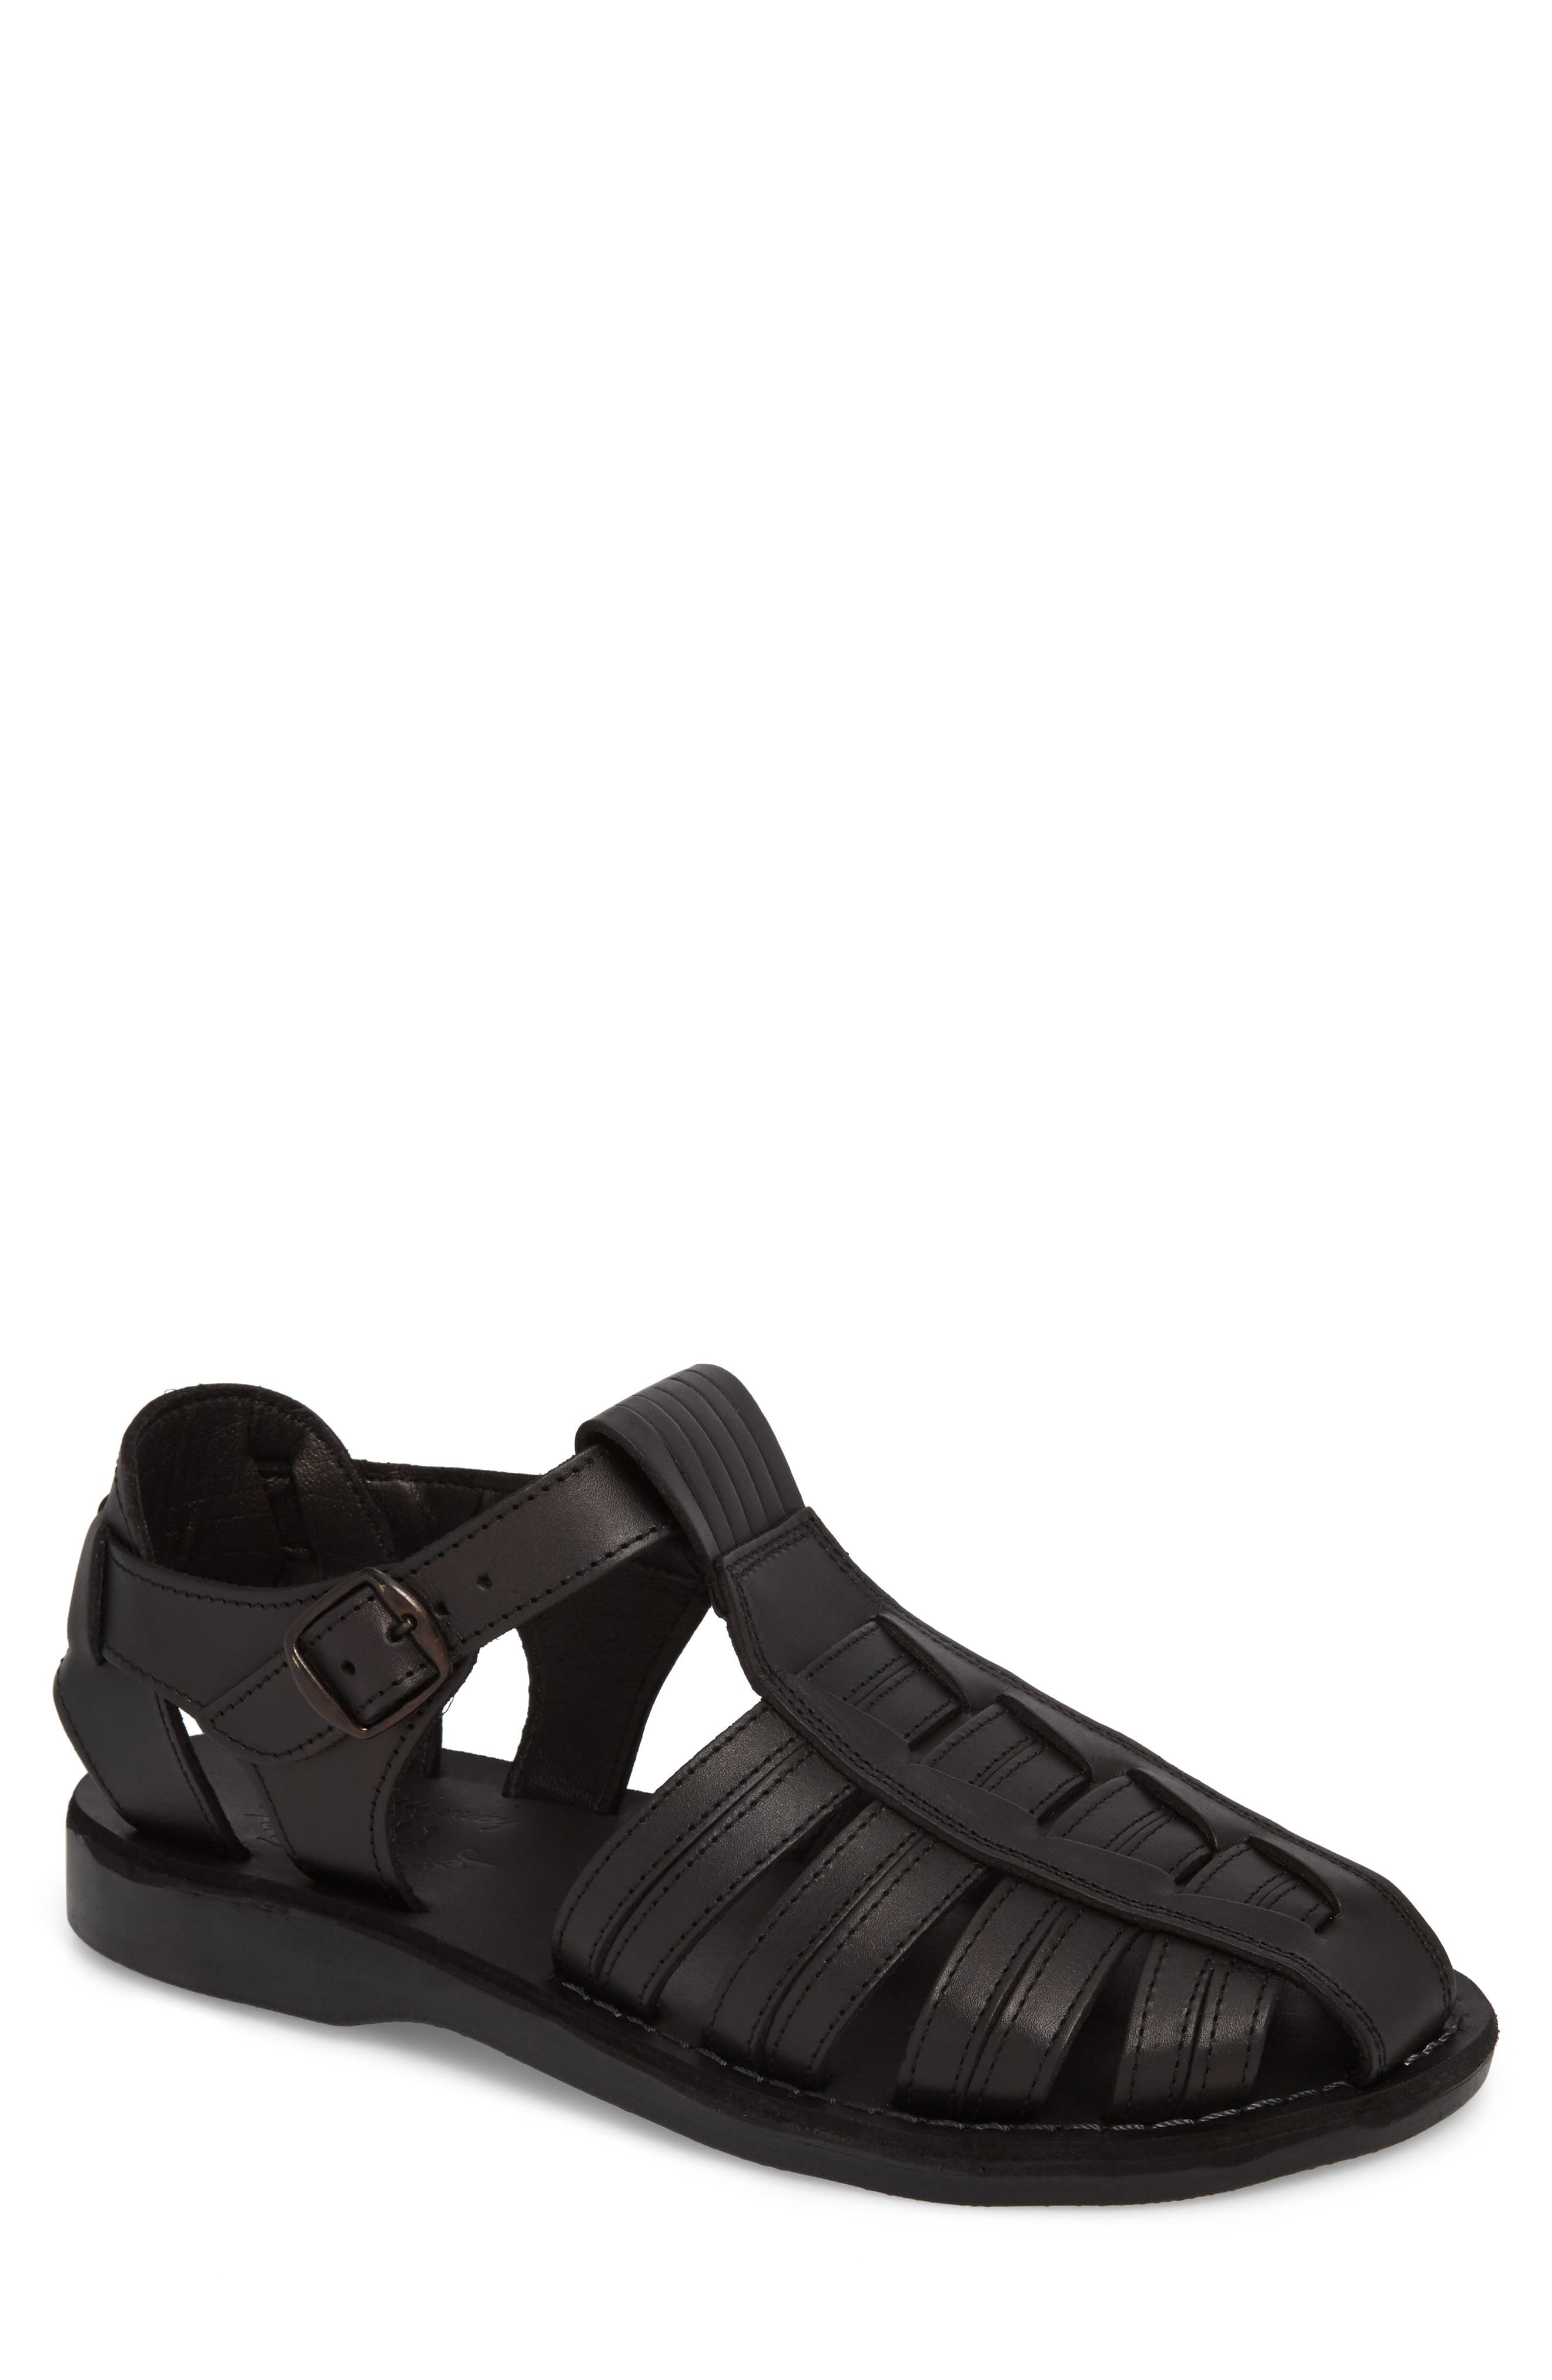 JERUSALEM SANDALS, Barak Fisherman Sandal, Main thumbnail 1, color, BLACK LEATHER